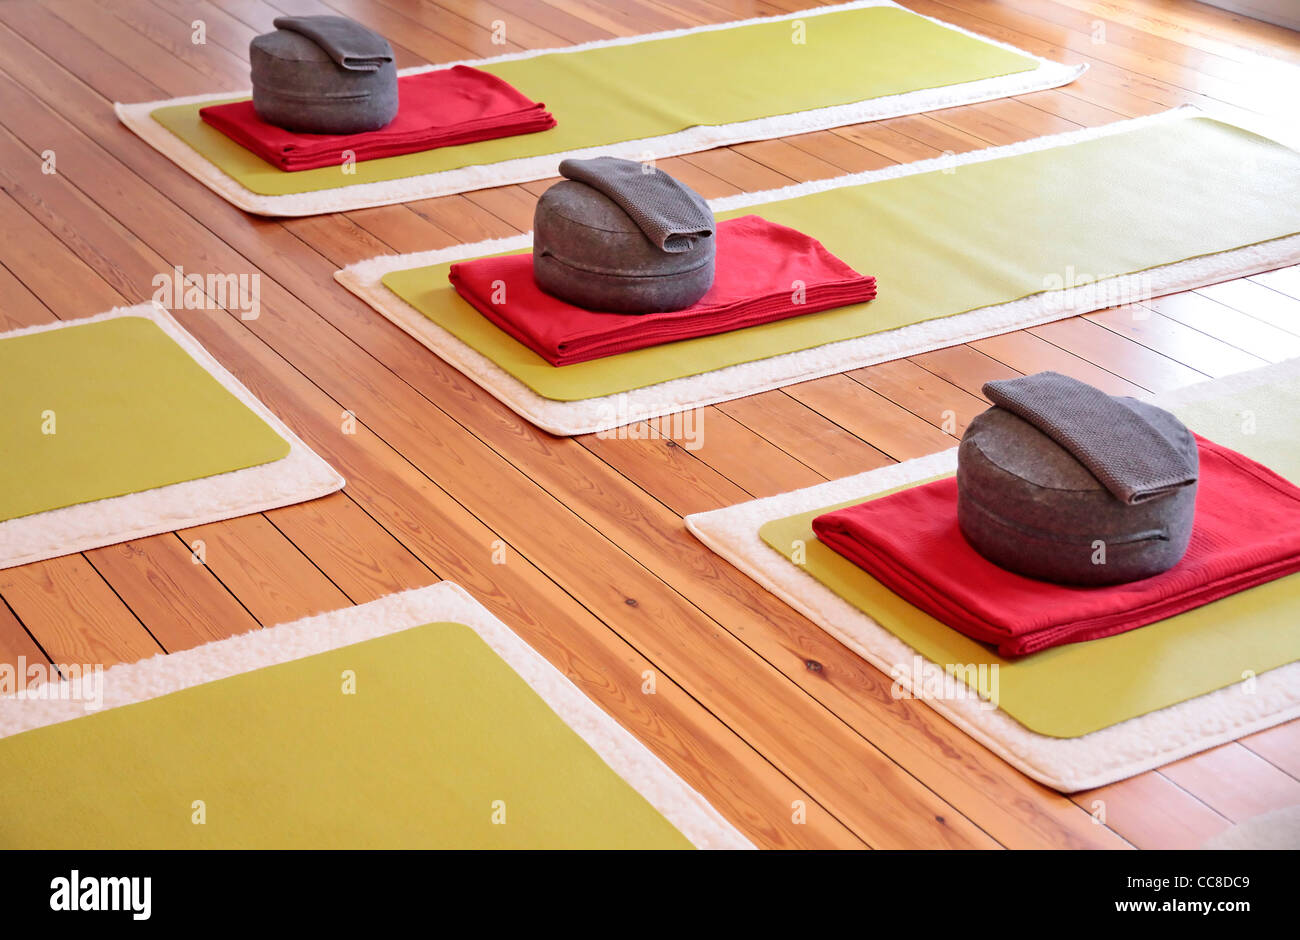 Close-up of yoga mats and yoga cushion in a yoga studio - Stock Image